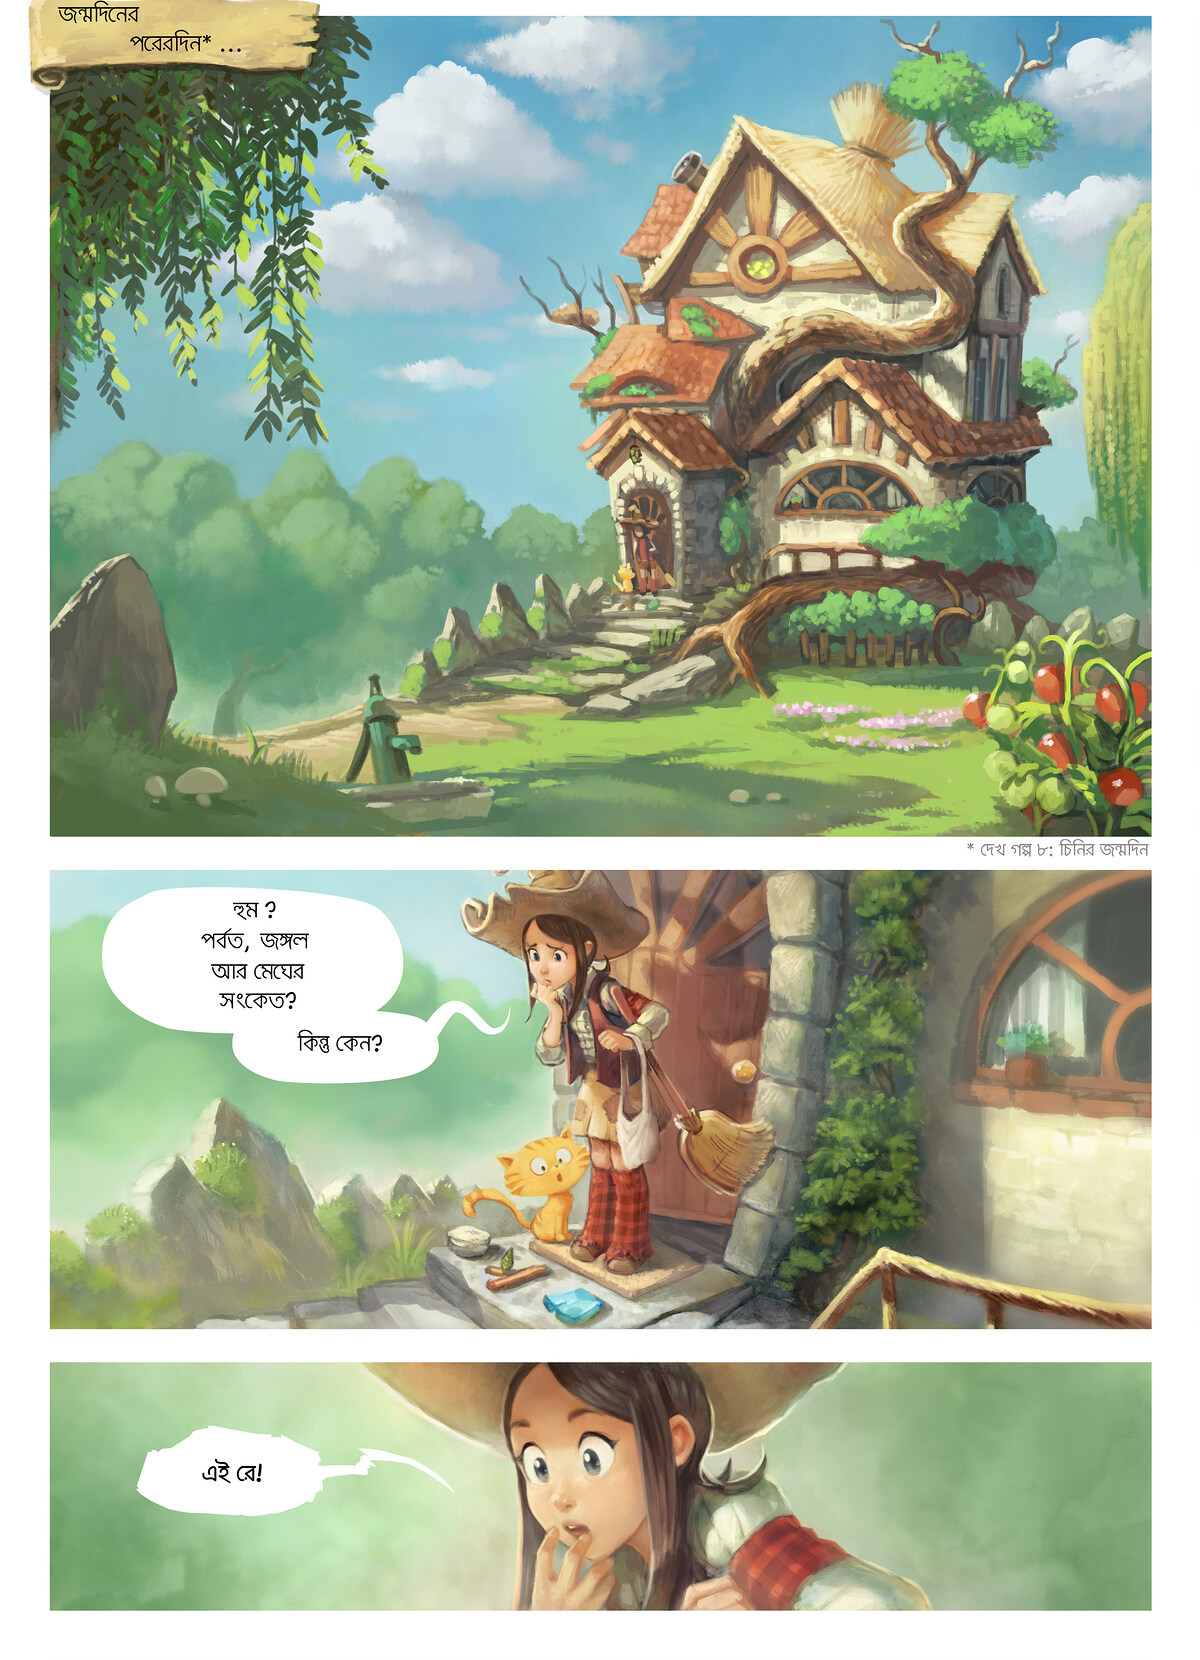 A webcomic page of Pepper&Carrot, episode 9 [bn], page 1